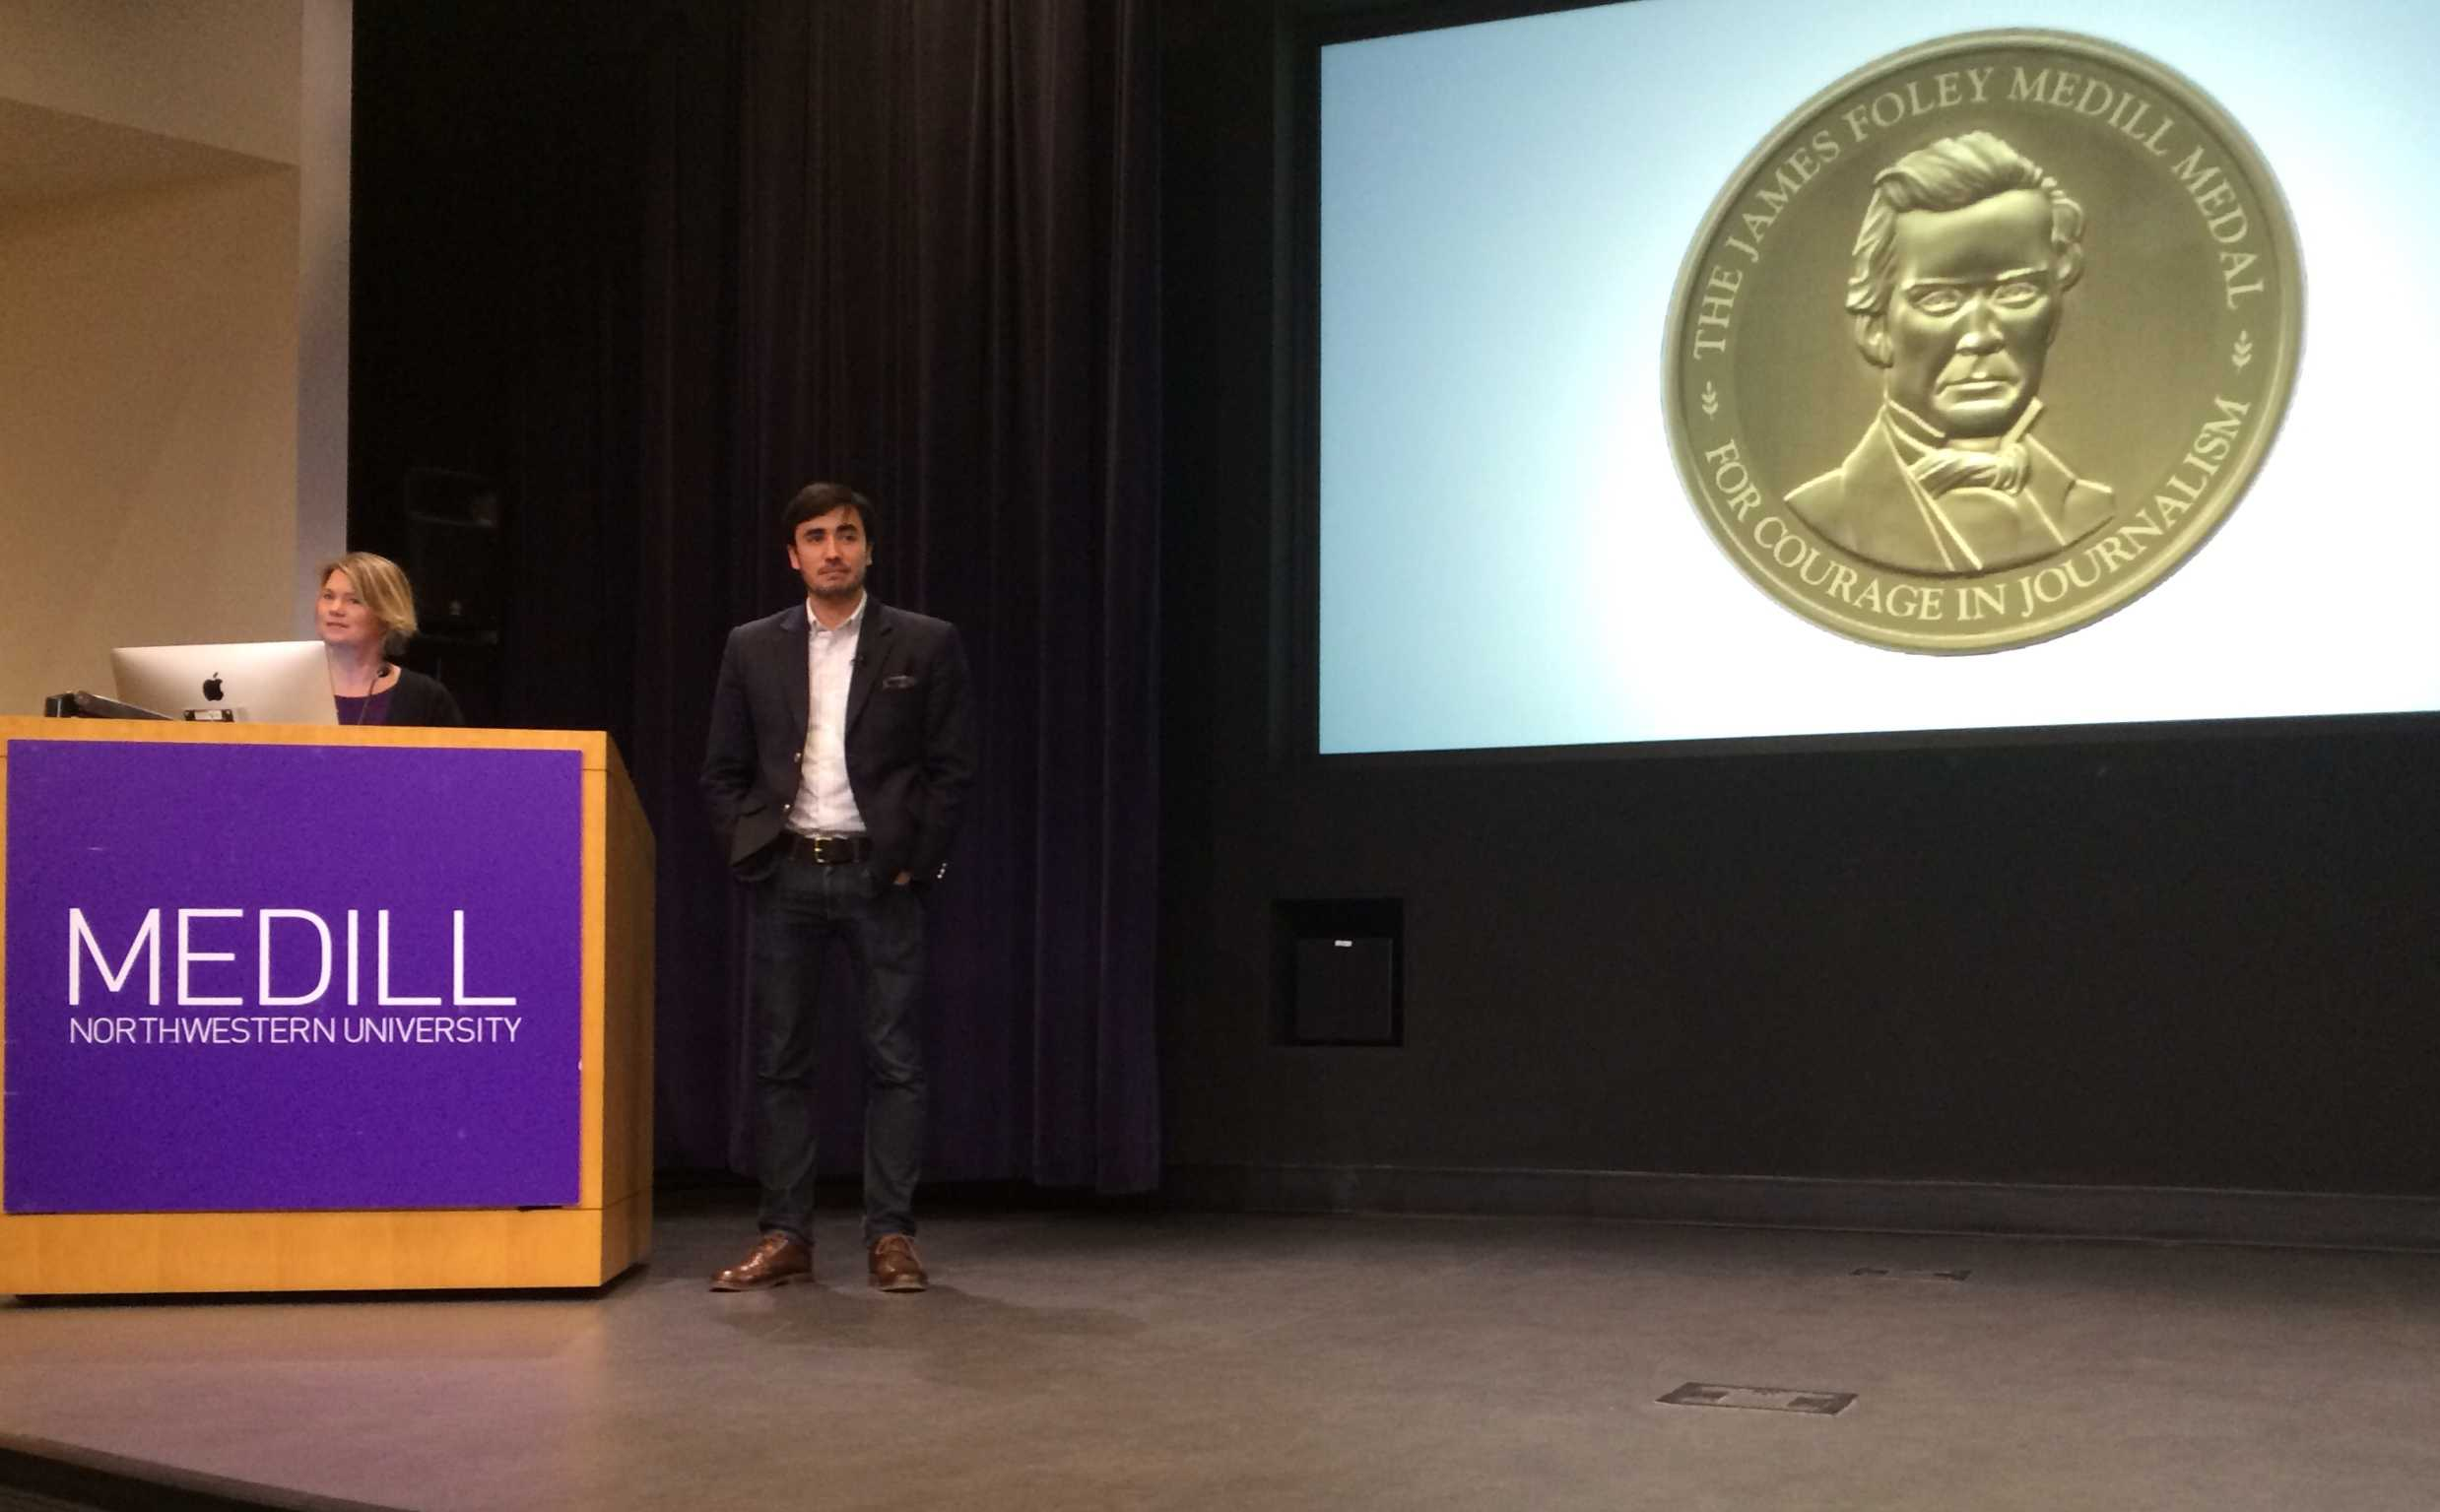 Journalist Matthieu Aikins accepts the James Foley Medill Medal for Courage in Journalism for his reporting in Afghanistan. Aikins and slain journalist James Foley were both awarded the medal this year for their work in war zones.